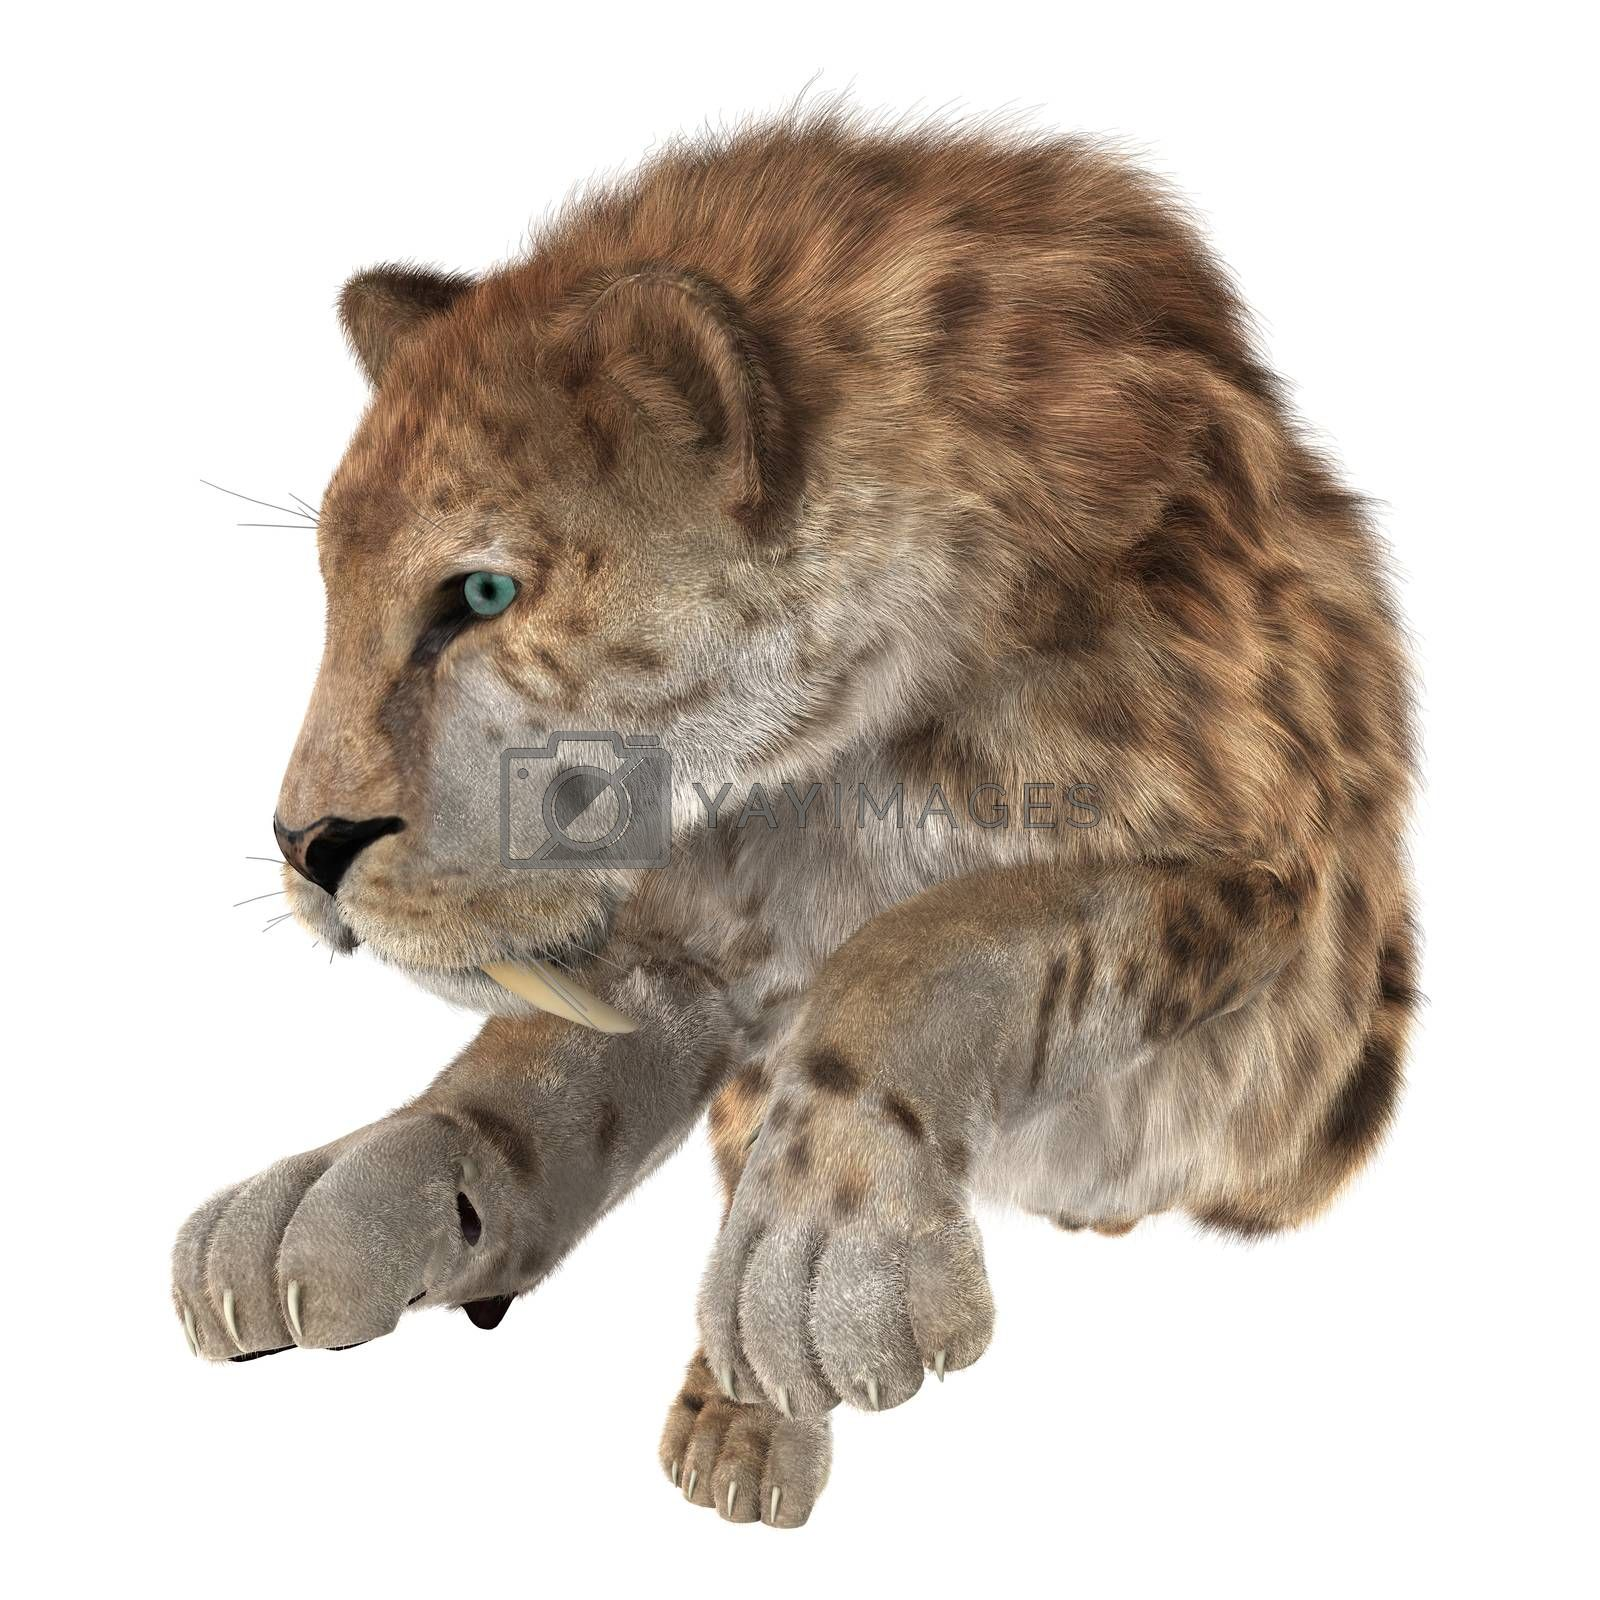 3D digital render of a big cat sabertooth isolated on white background